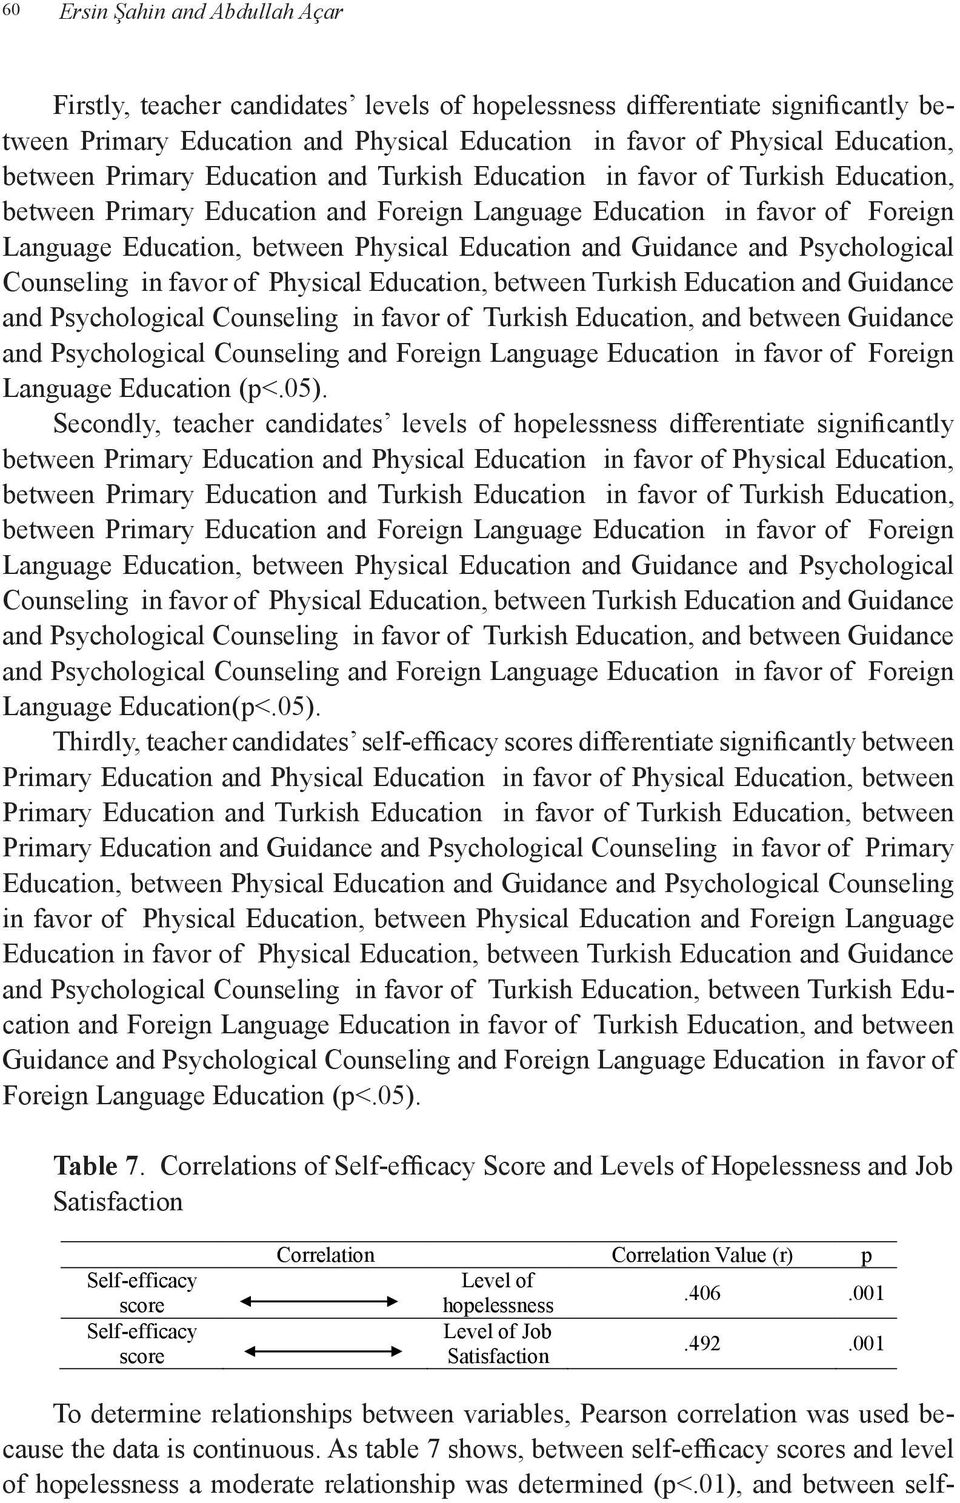 Education and Guidance and Psychological Counseling in favor of Physical Education, between Turkish Education and Guidance and Psychological Counseling in favor of Turkish Education, and between